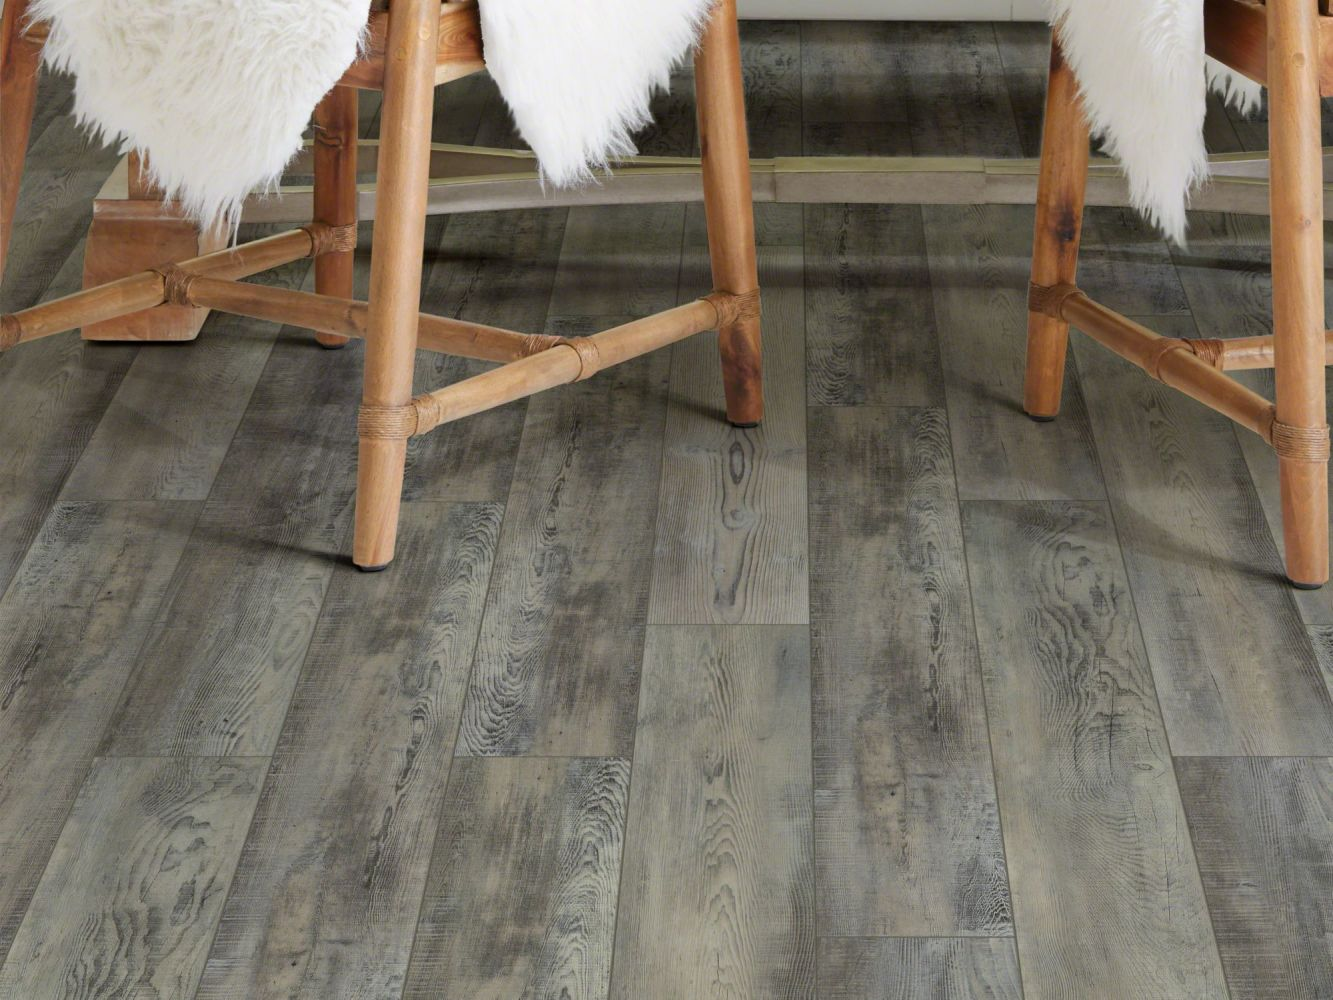 Shaw Floors Resilient Residential Pantheon HD Plus Calcare 00598_2001V